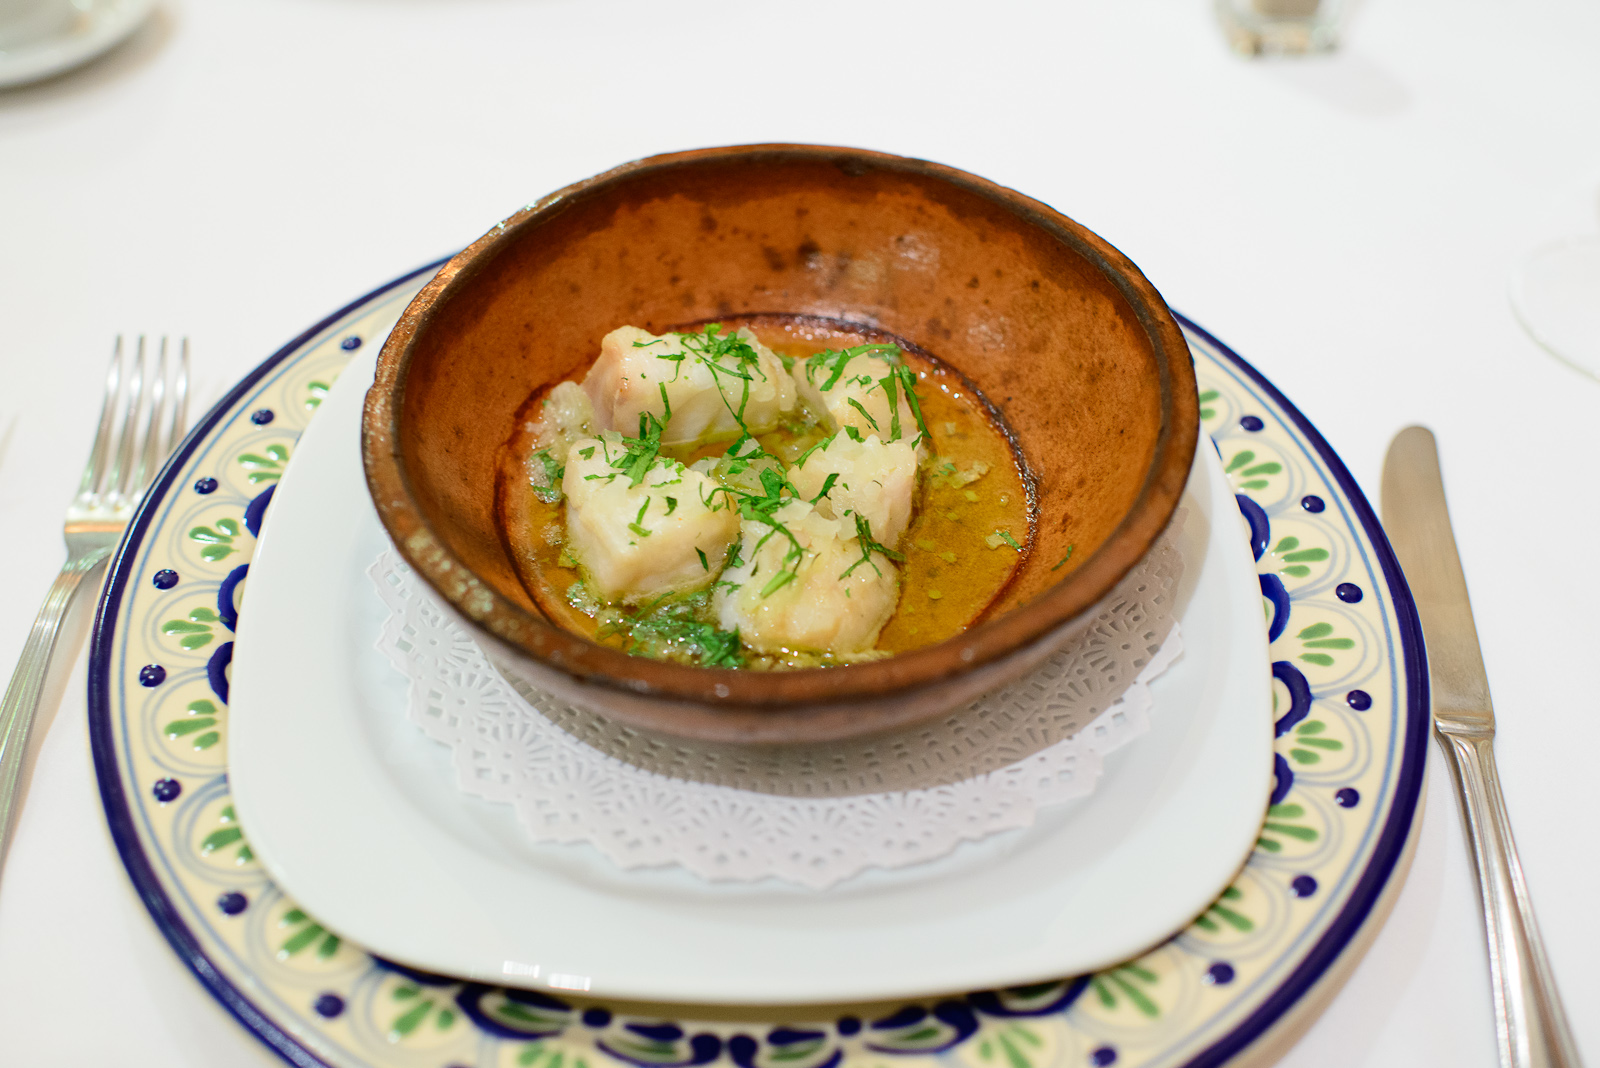 Robalo en cazuela - Snook cooked in a cazuela with butter, olive